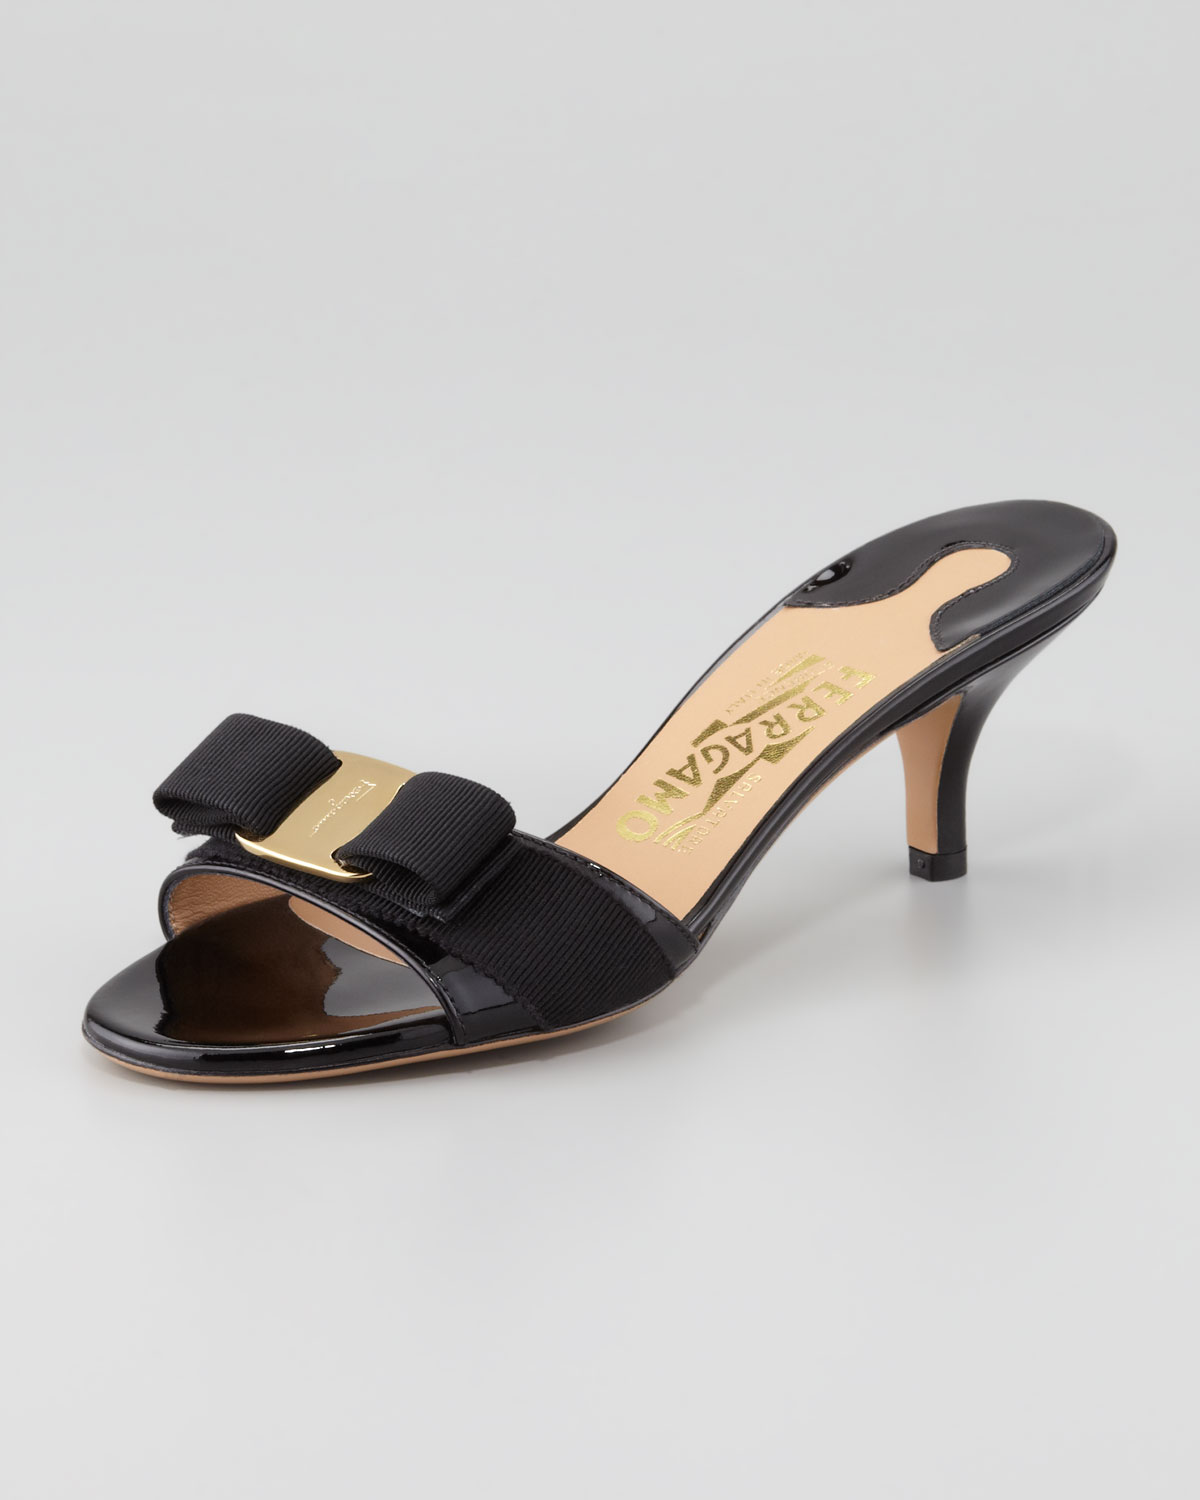 Ferragamo Glory Patent Bow Slide Sandal in Black - Lyst